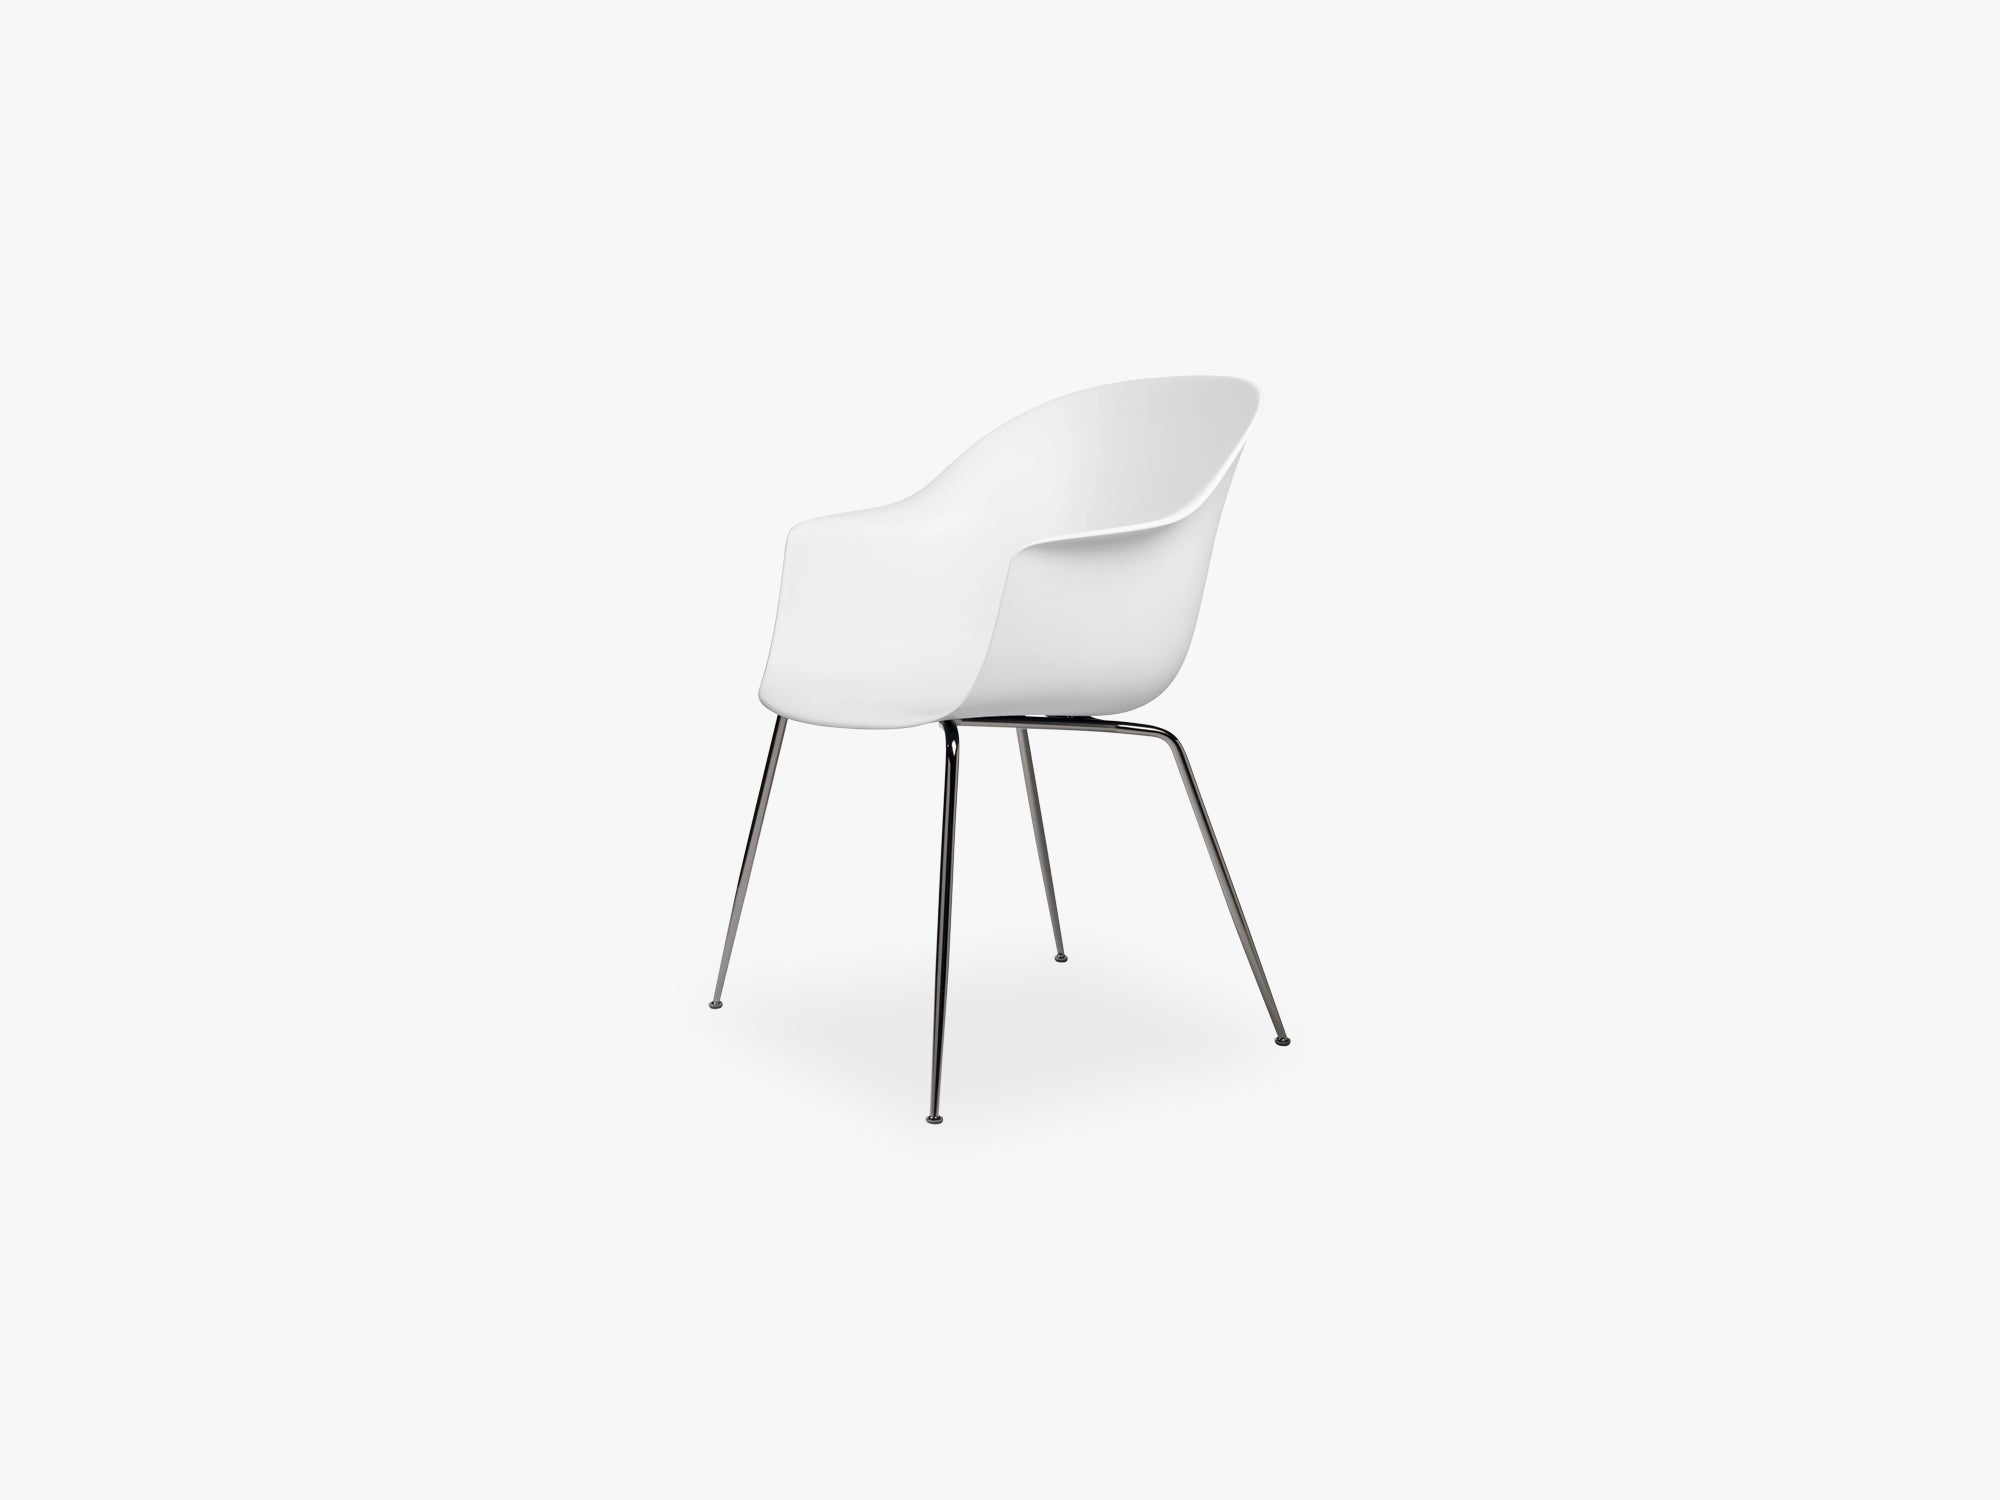 Bat Dining Chair - Skal m Conic base - Black Chrome, Pure White fra GUBI